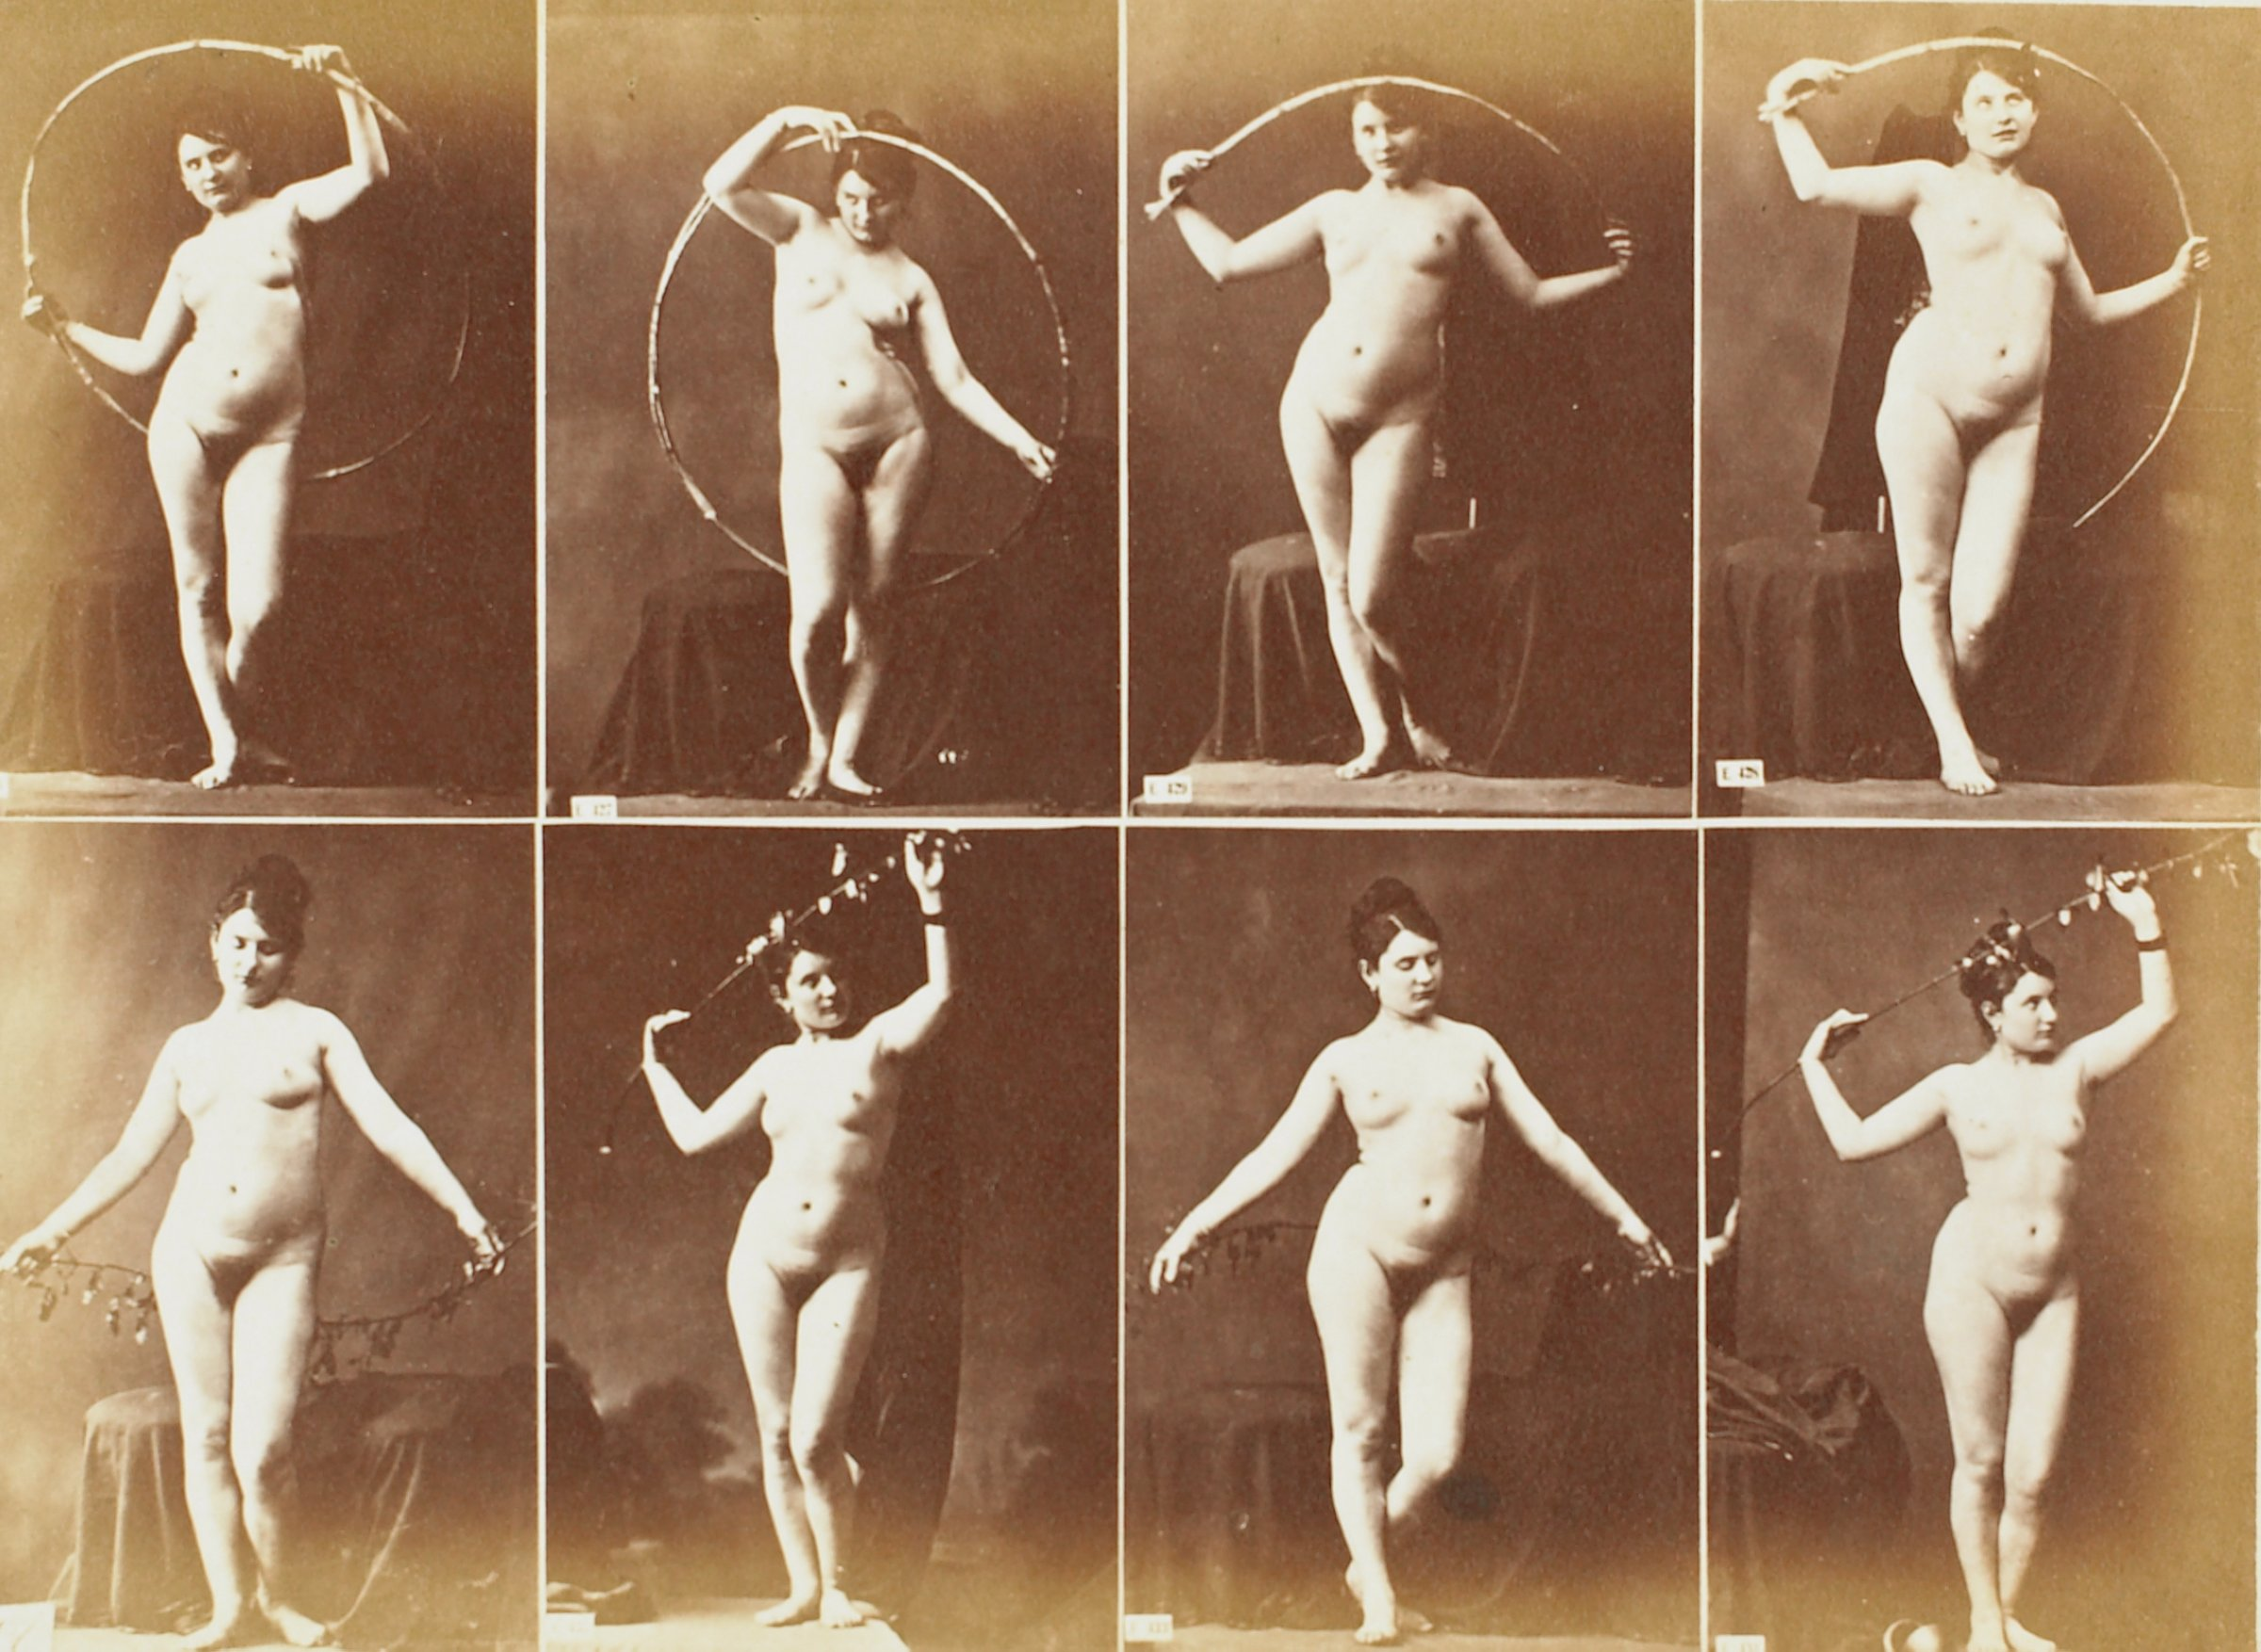 """Albumen print with eight images of a nude woman in varied poses mounted onto blue paper with printed text """"A.CALAVAS Éditeur, — 68, Rue de Lafayette, PARIS."""" Paper is mounted to 2-ply non-acidic mat board. Appears to have been removed from a book binding."""